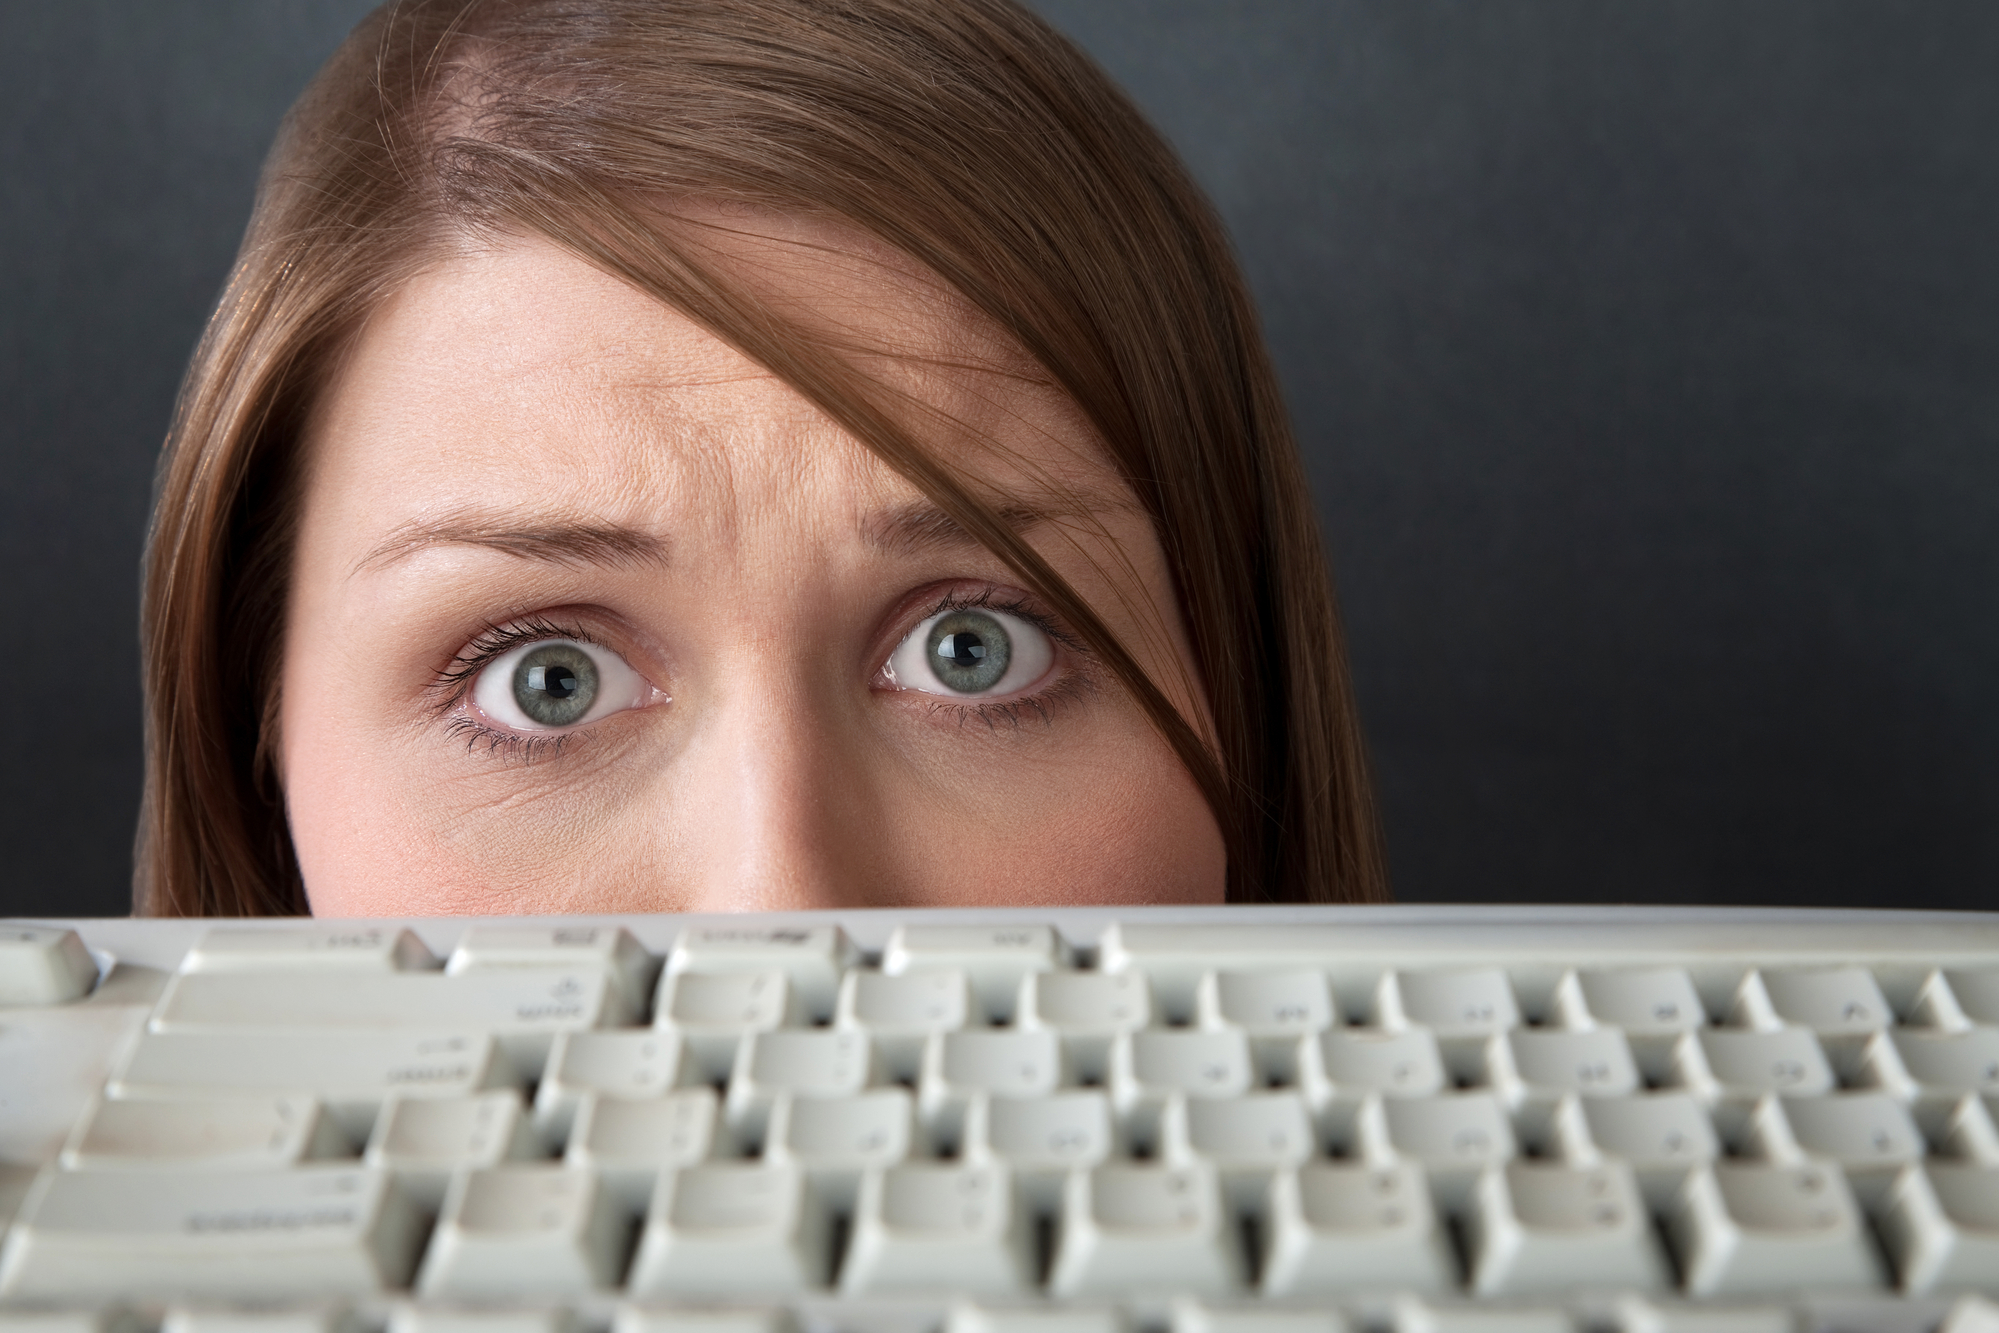 Nervous wide-eye Caucasian woman in front of a computer keyboard